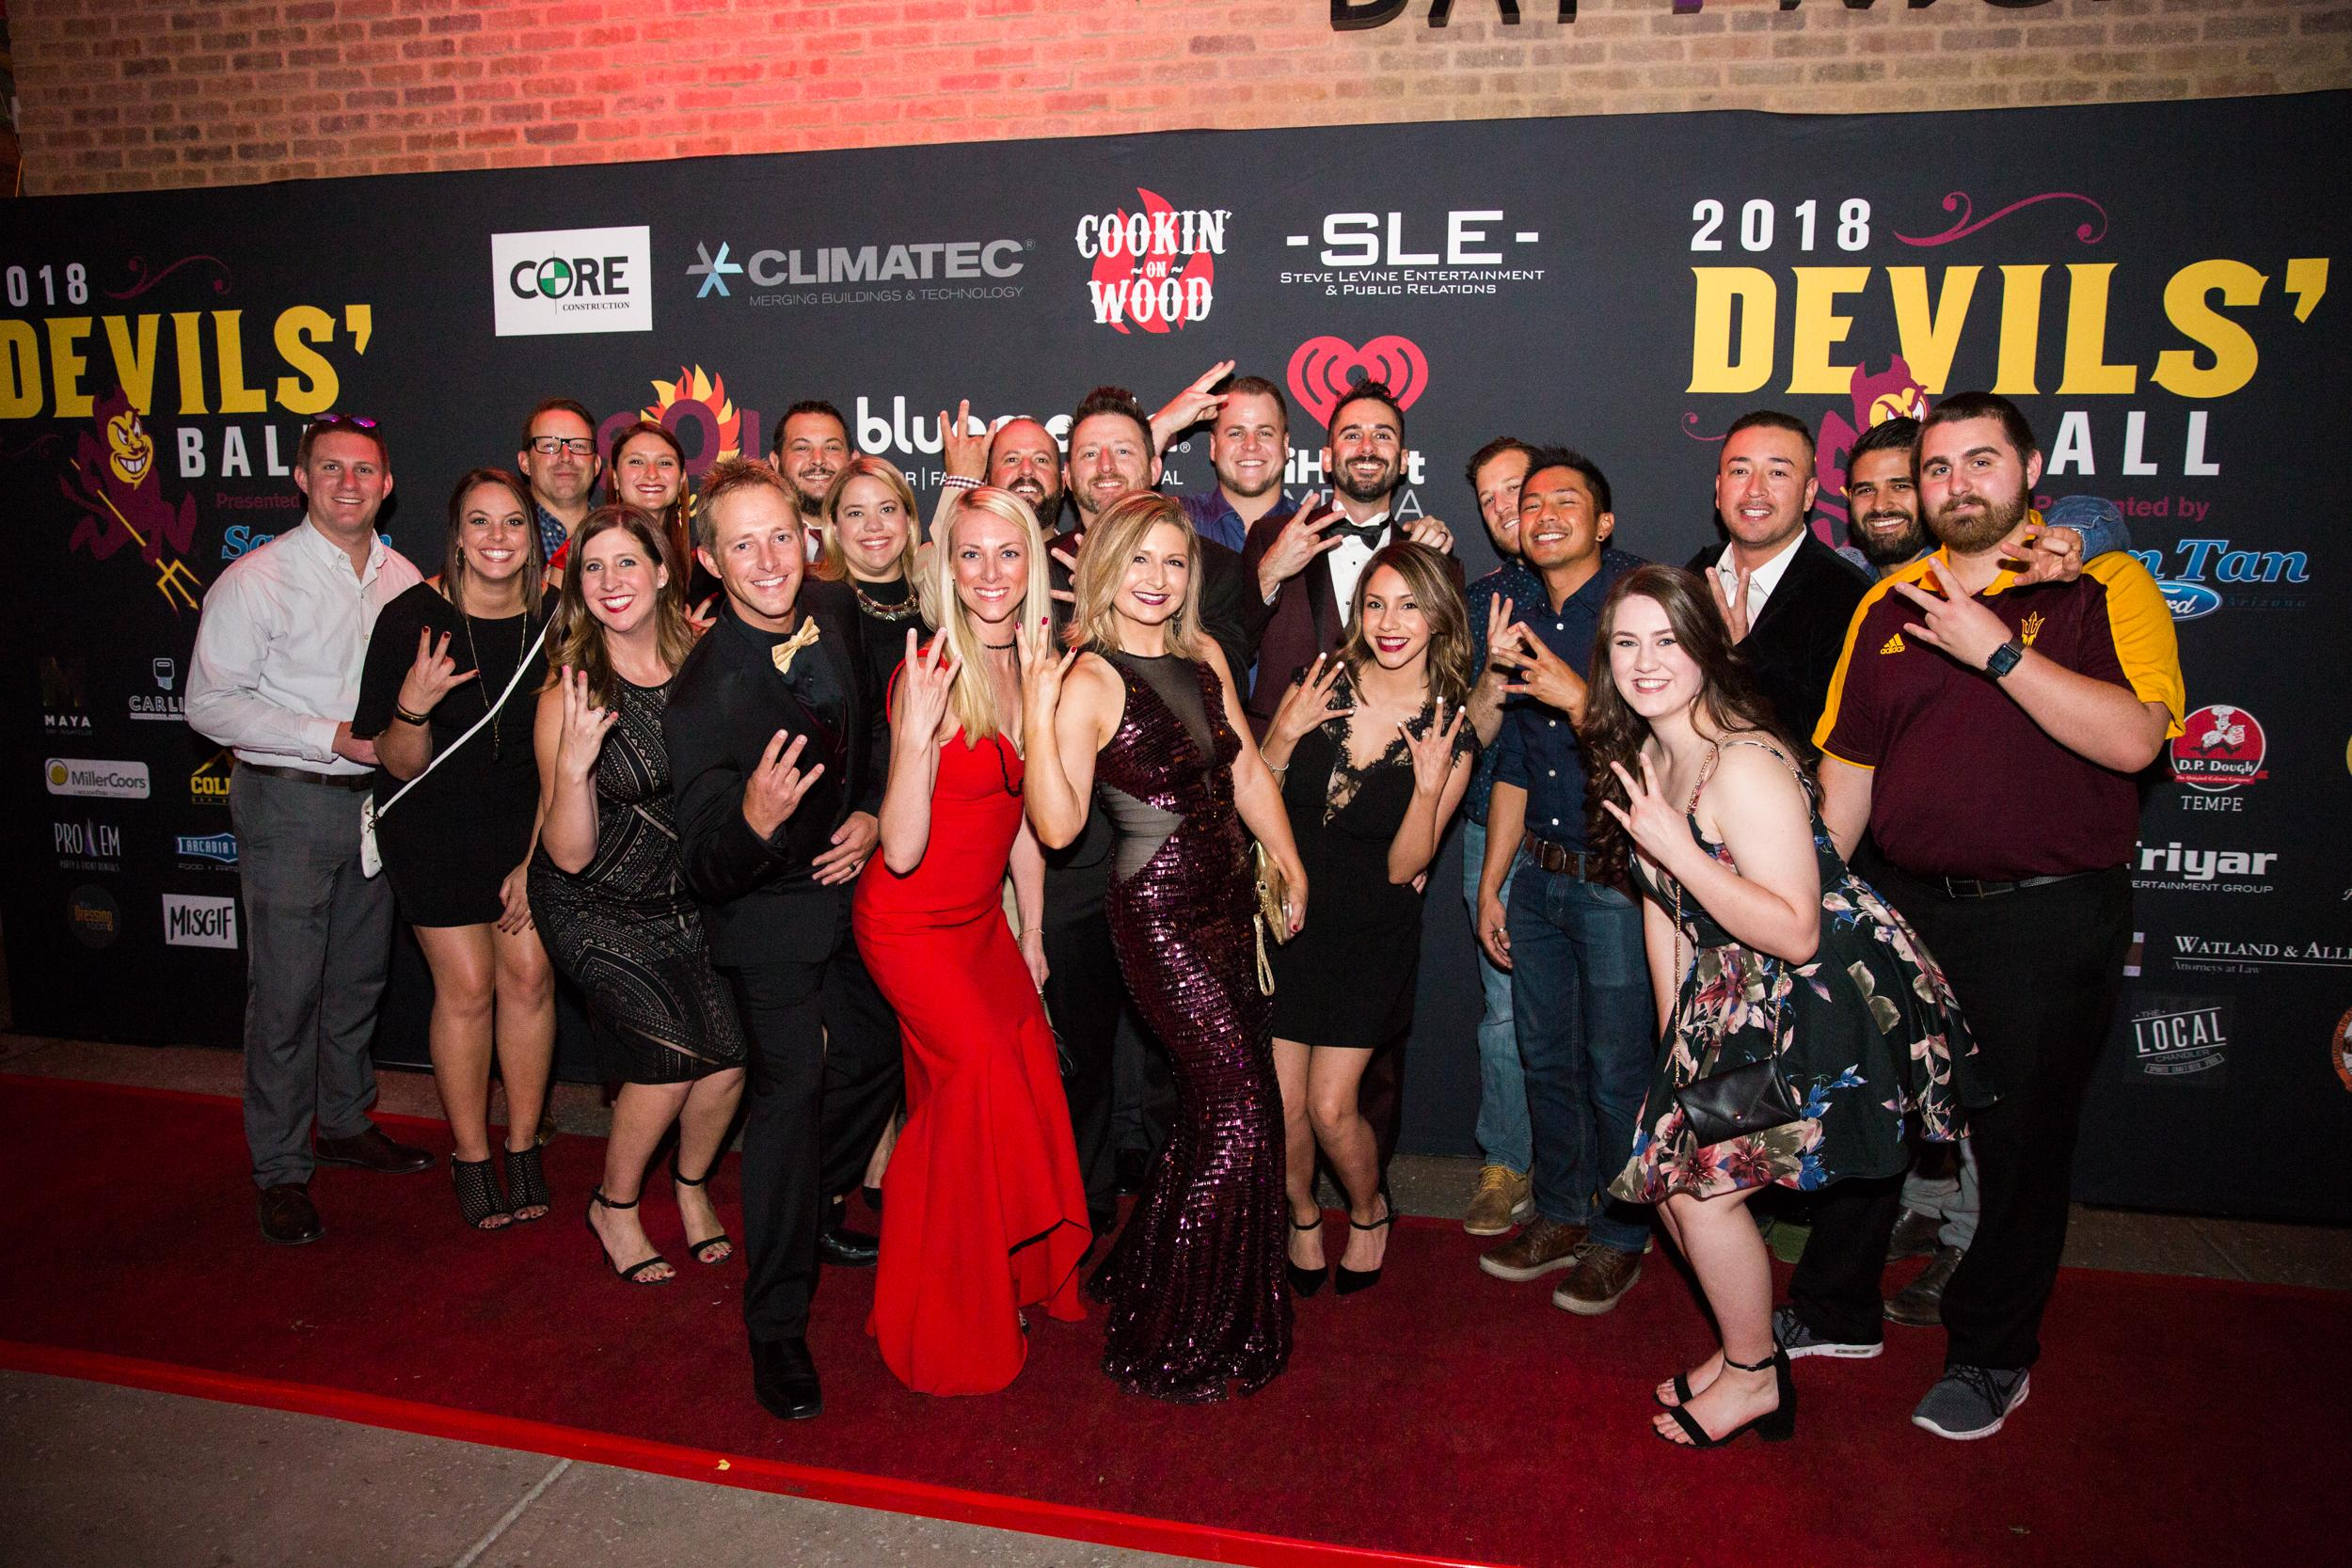 Sun Devil Club Young Professionals Group Devils' Ball